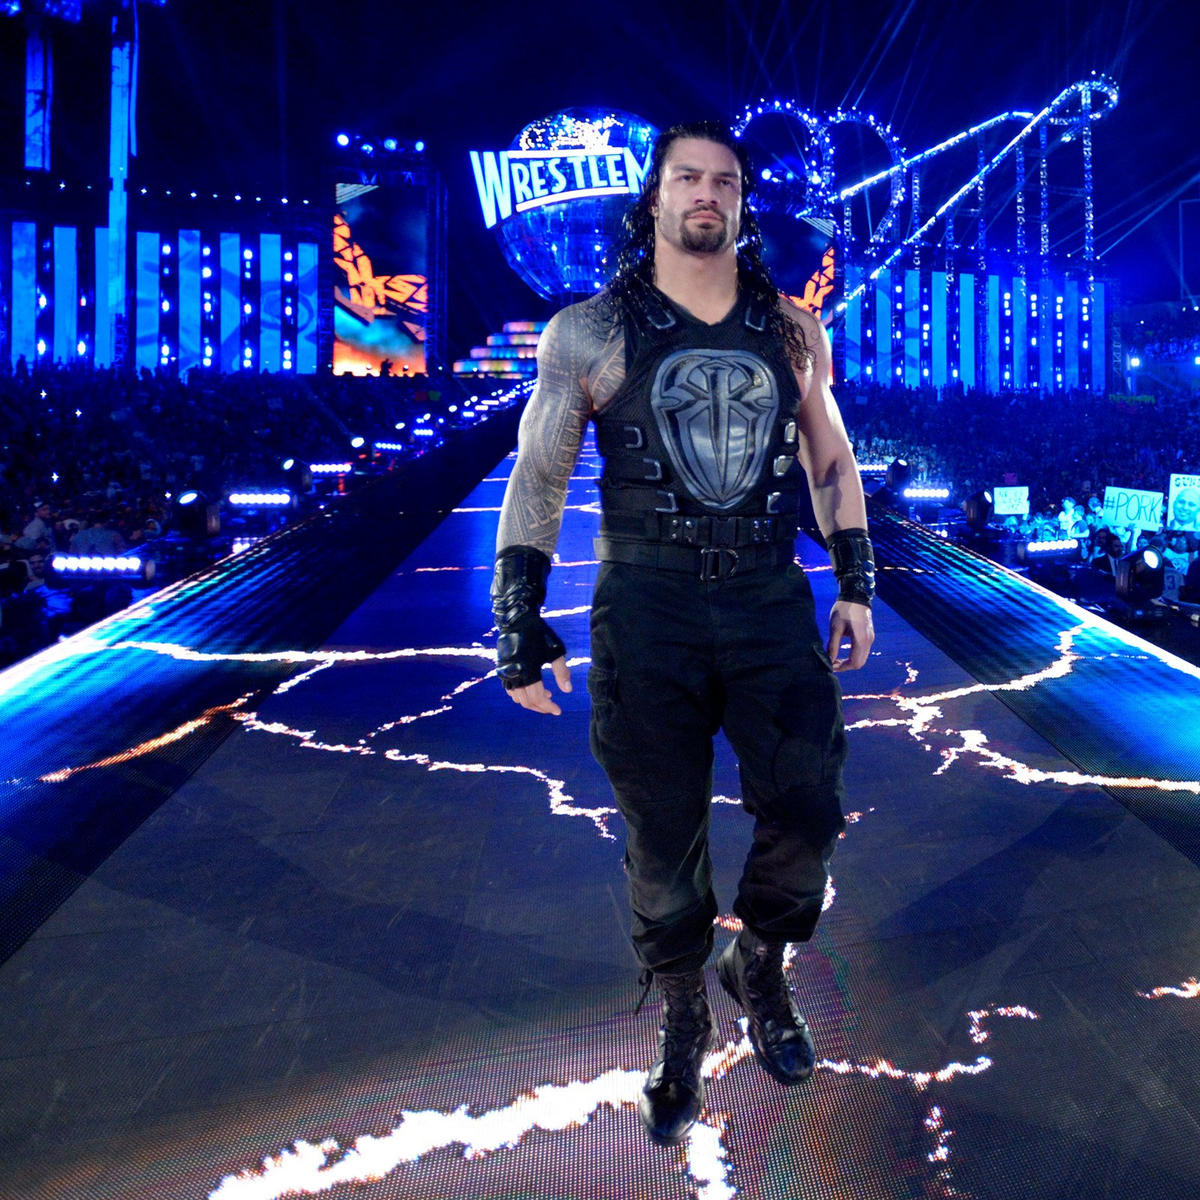 Roman Reigns Vs The Undertaker Wwe